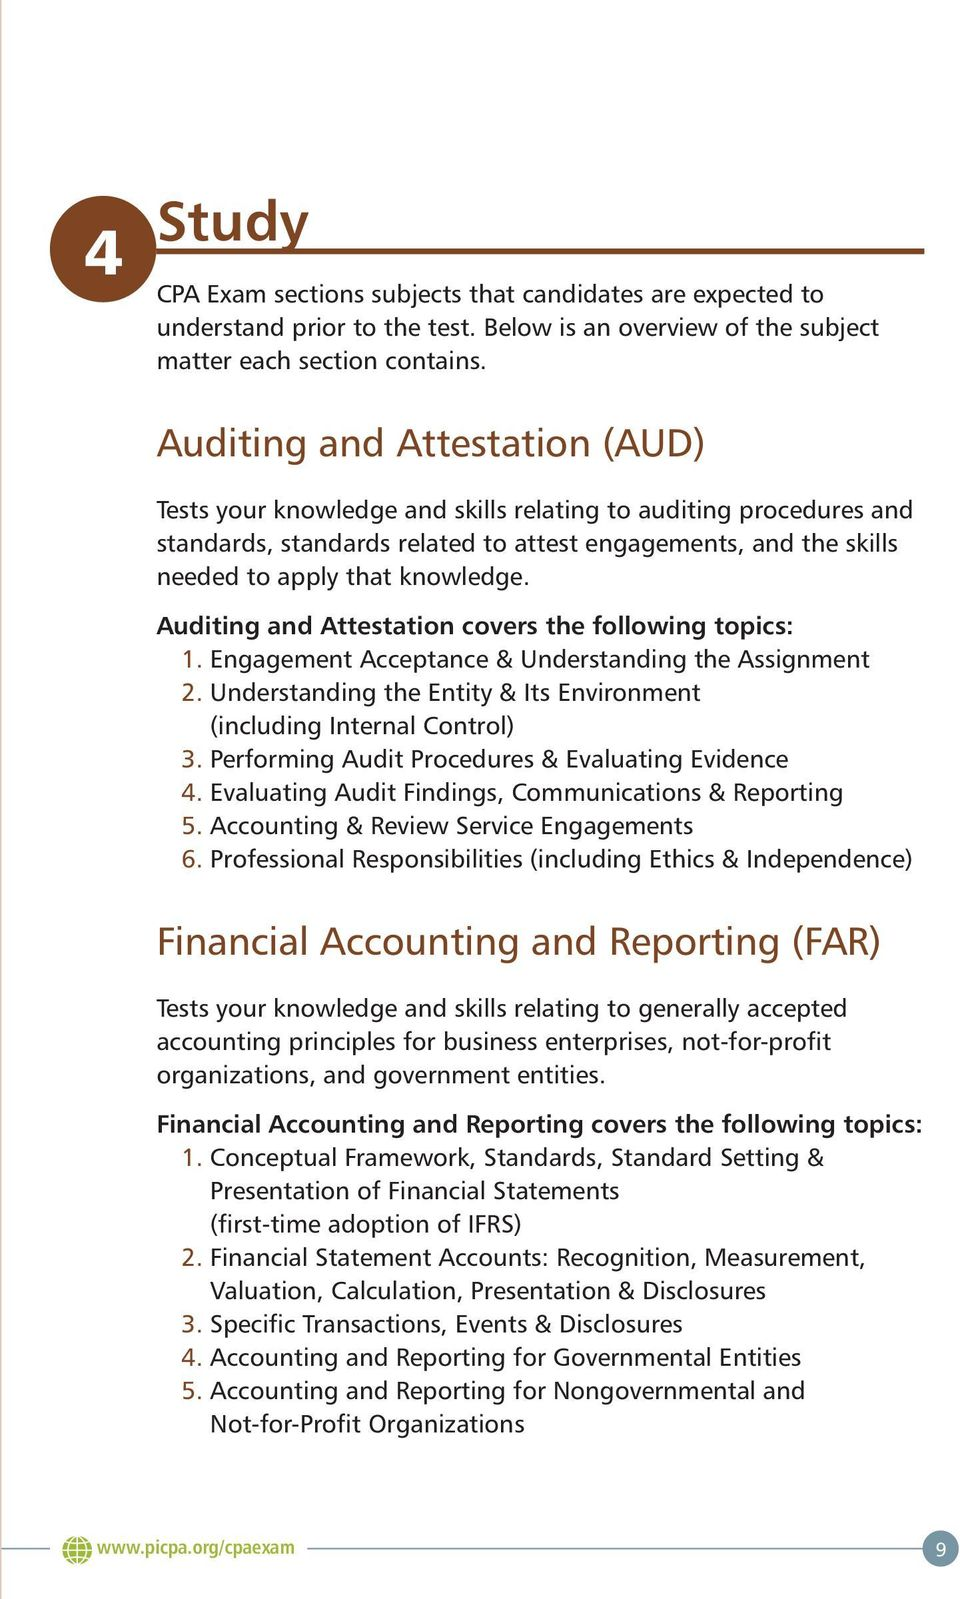 Auditing and Attestation covers the following topics: 1. Engagement Acceptance & Understanding the Assignment 2. Understanding the Entity & Its Environment (including Internal Control) 3.